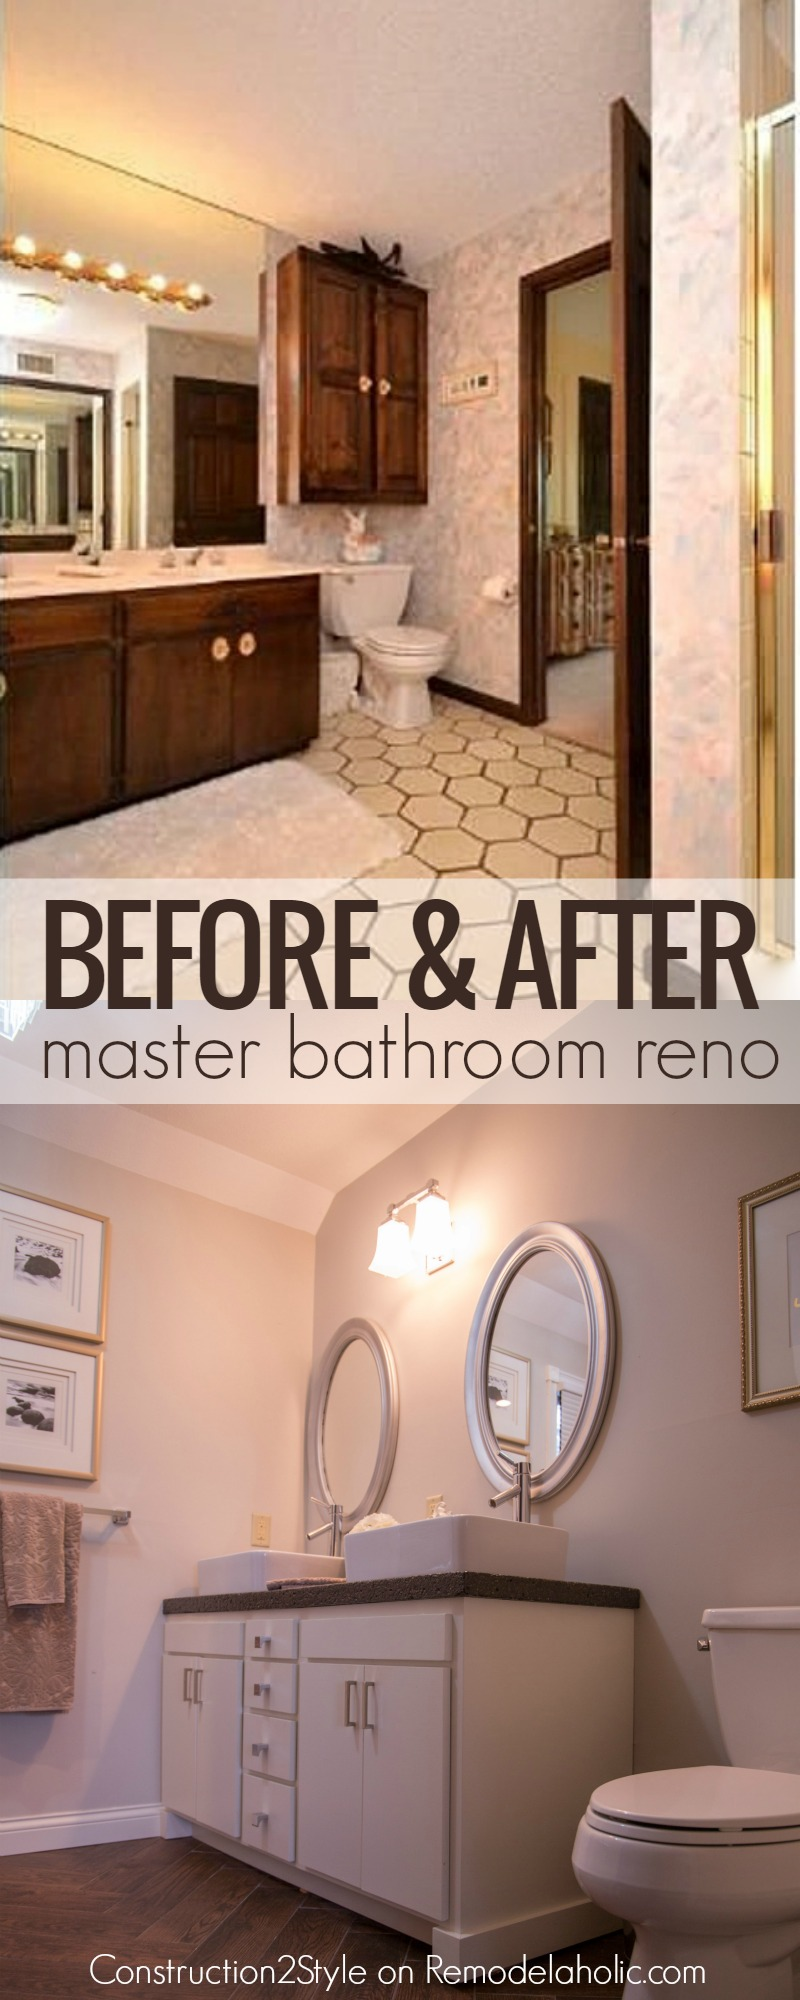 amazing master bathroom renovation diy concrete coutnertops with vessel sinks wood tile floor